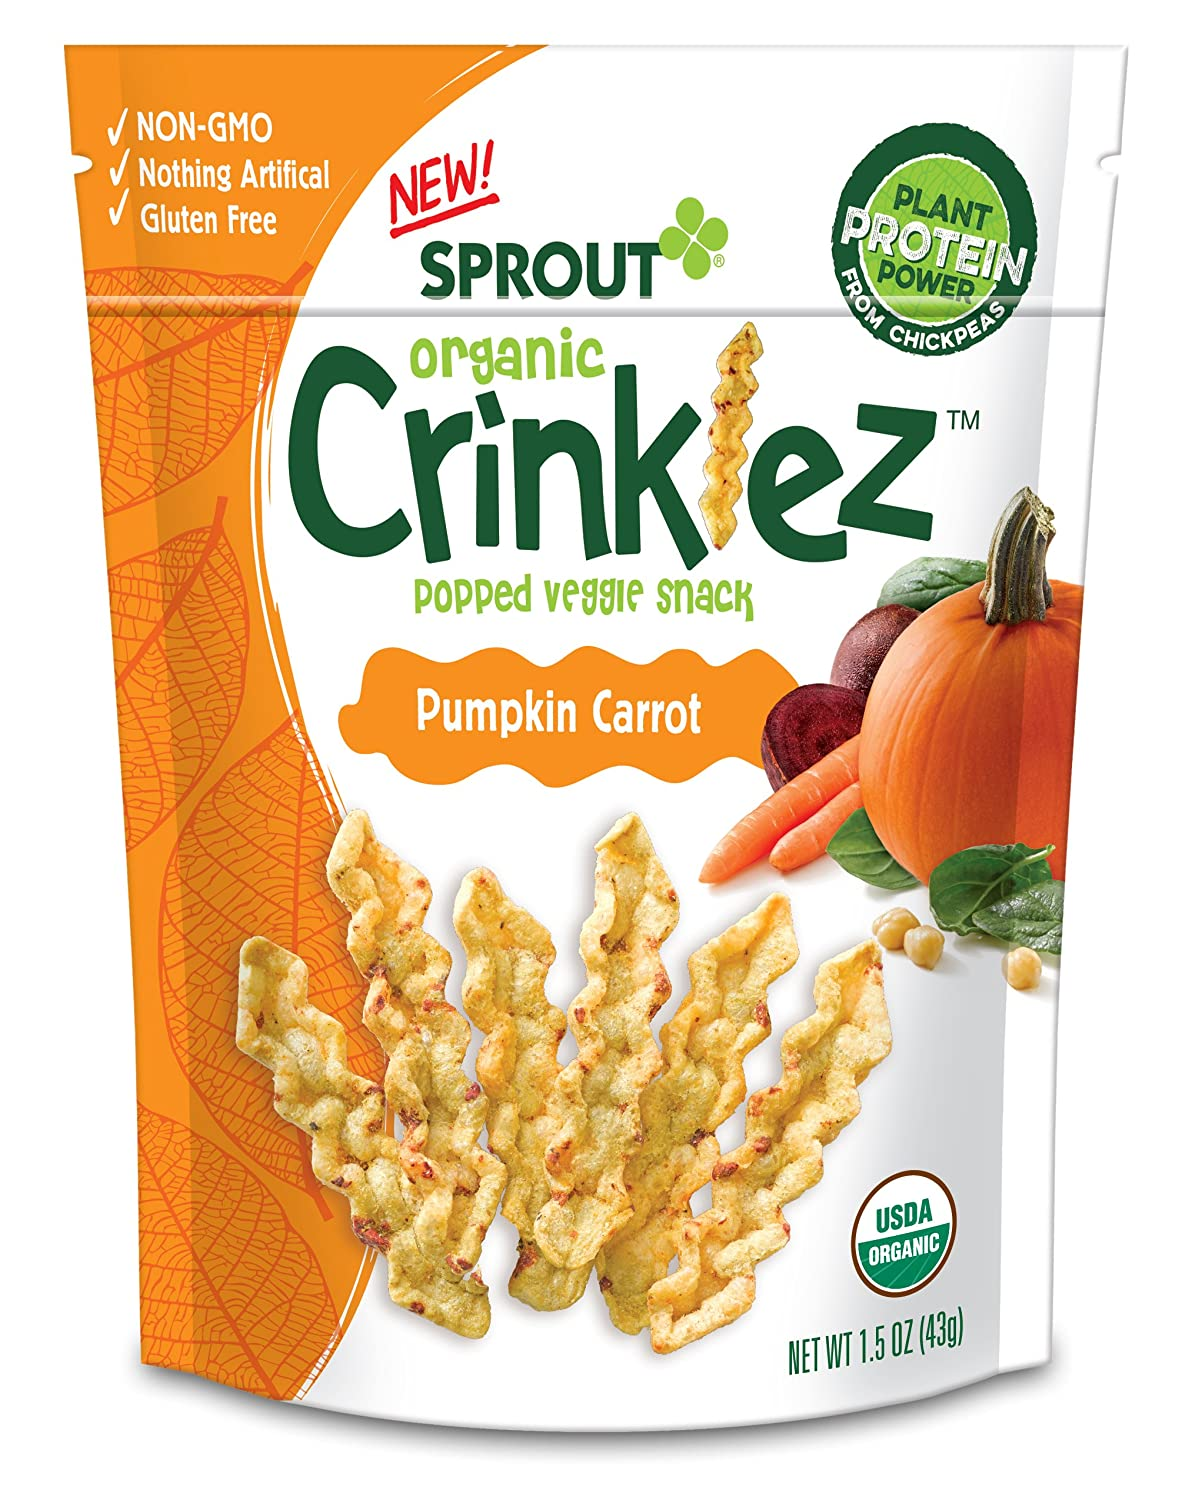 Sprout Organic Baby Food, Sprout Organic Crinklez Toddler Snack, Cheesy Spinach, 1.5 Ounce Bag (Pack of 1), Plant Powered, Popped Veggie Snack, Gluten Free, USDA Certified Organic, Nothing Artificial Sprout Foods Inc.